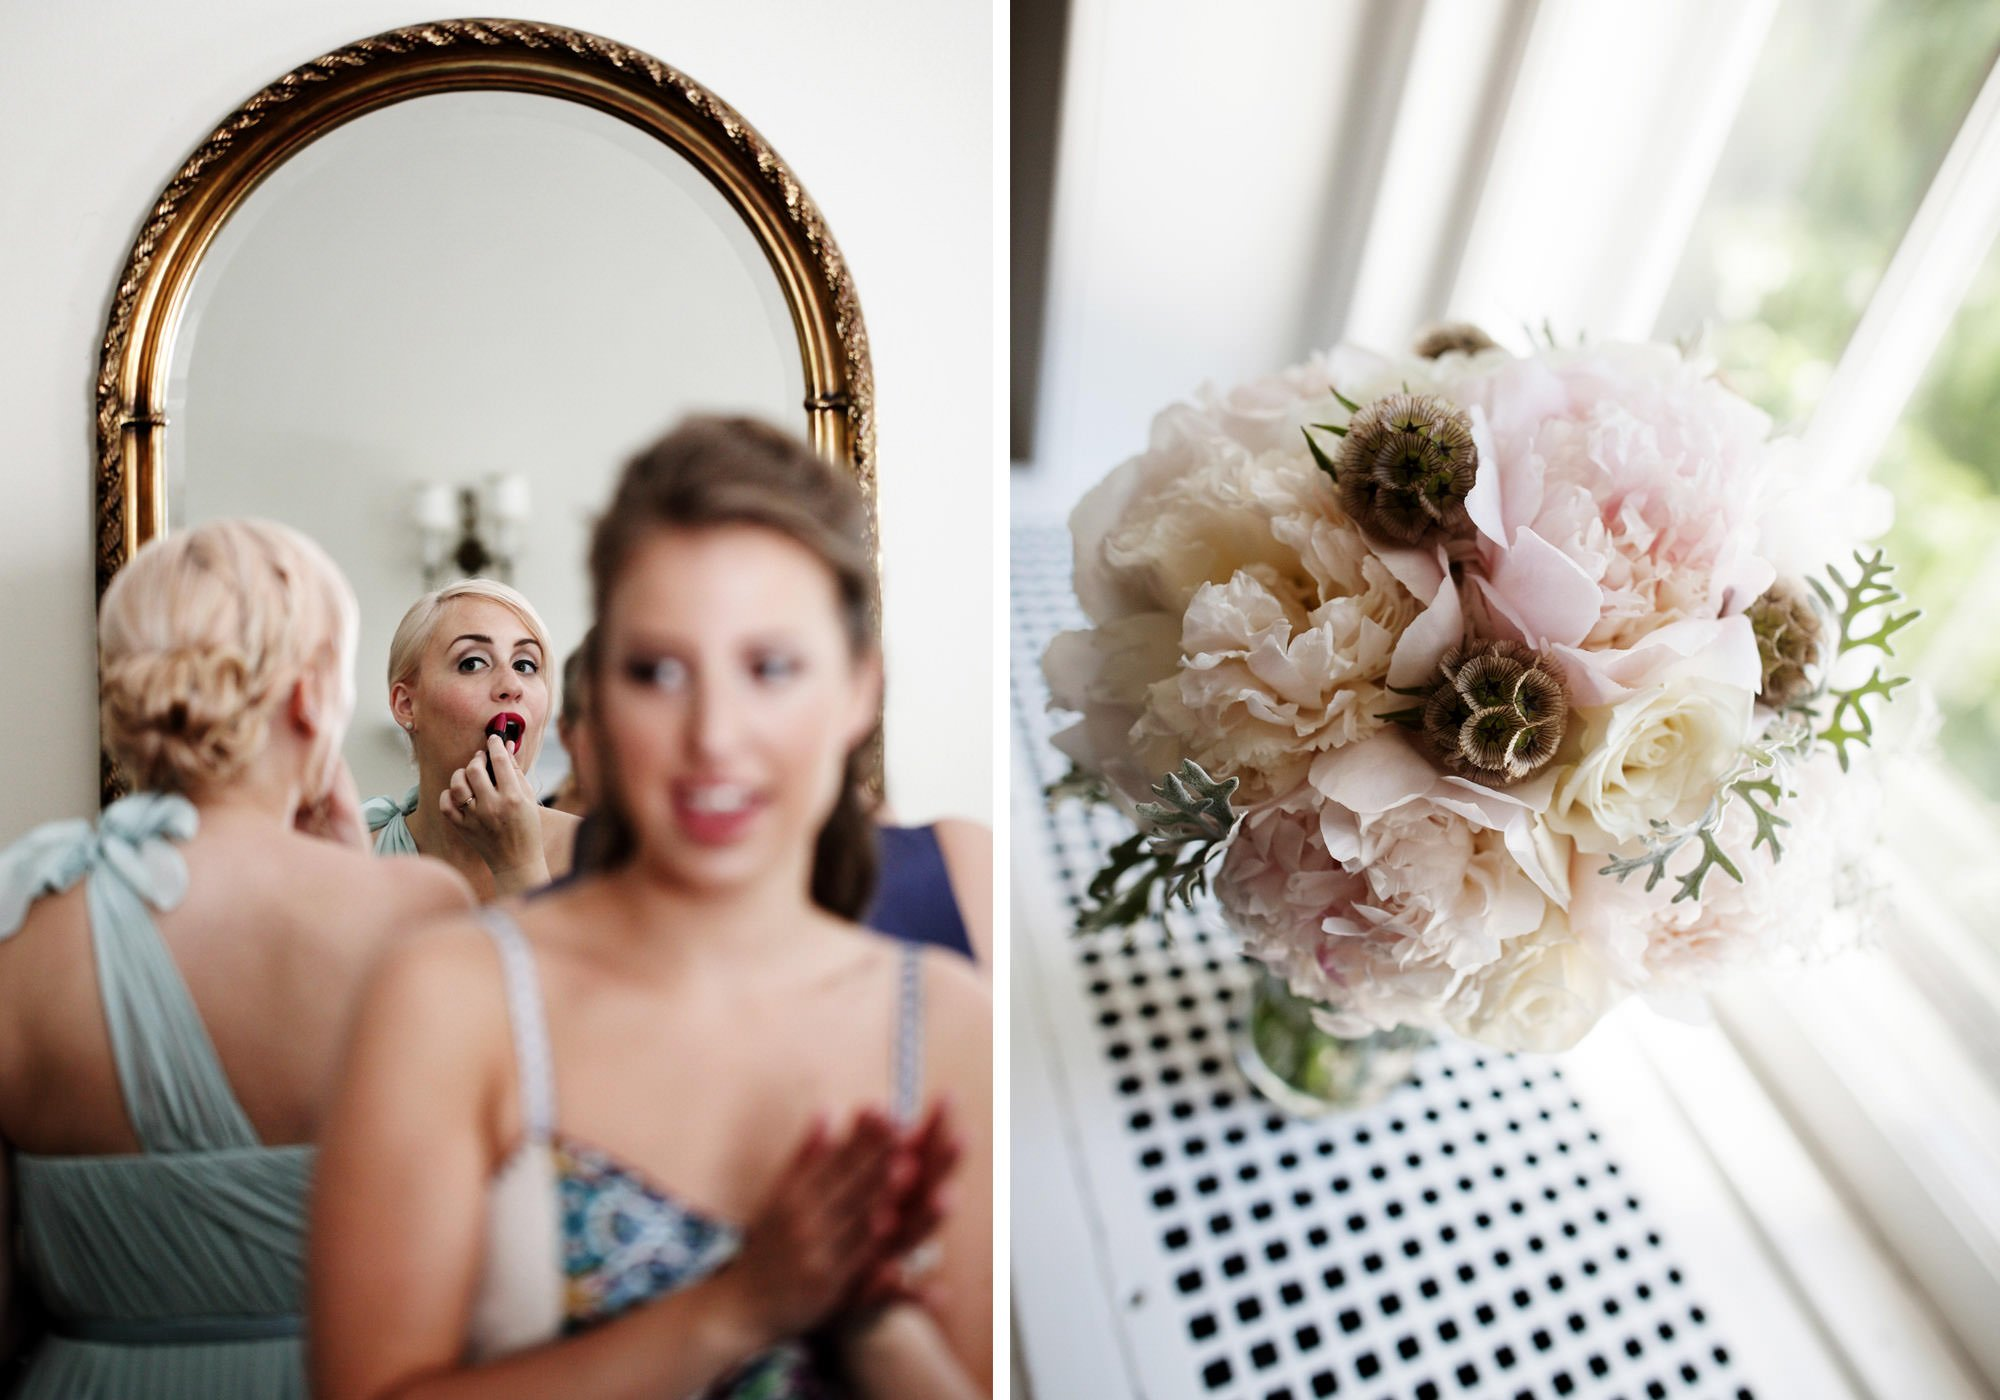 The bridesmaids get ready for the wedding at Woodend Sanctuary & Mansion.